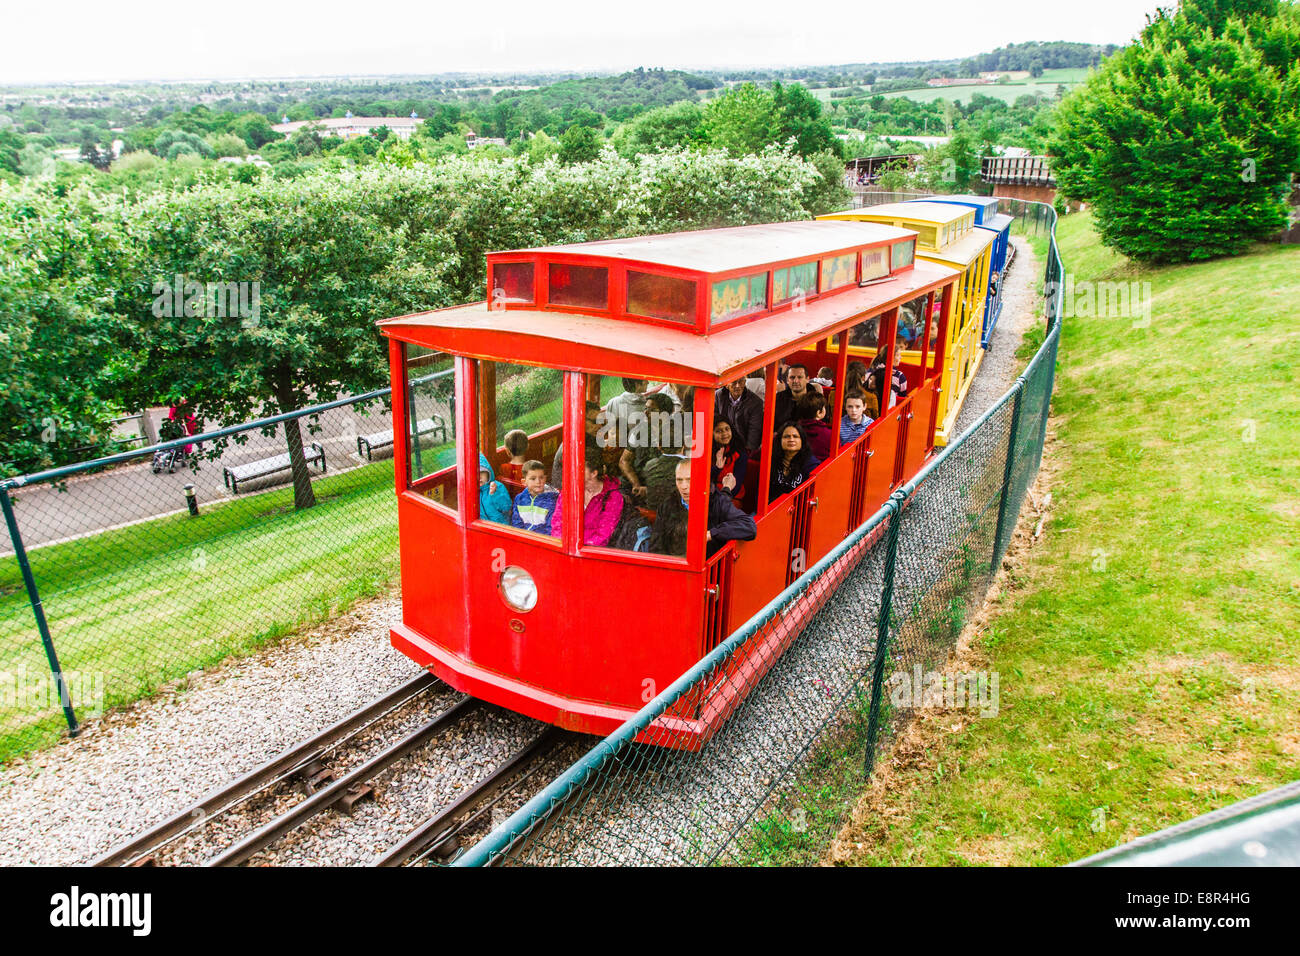 Hill train at Legoland Windsor Resort, Windsor, London, England, United Kingdom. - Stock Image